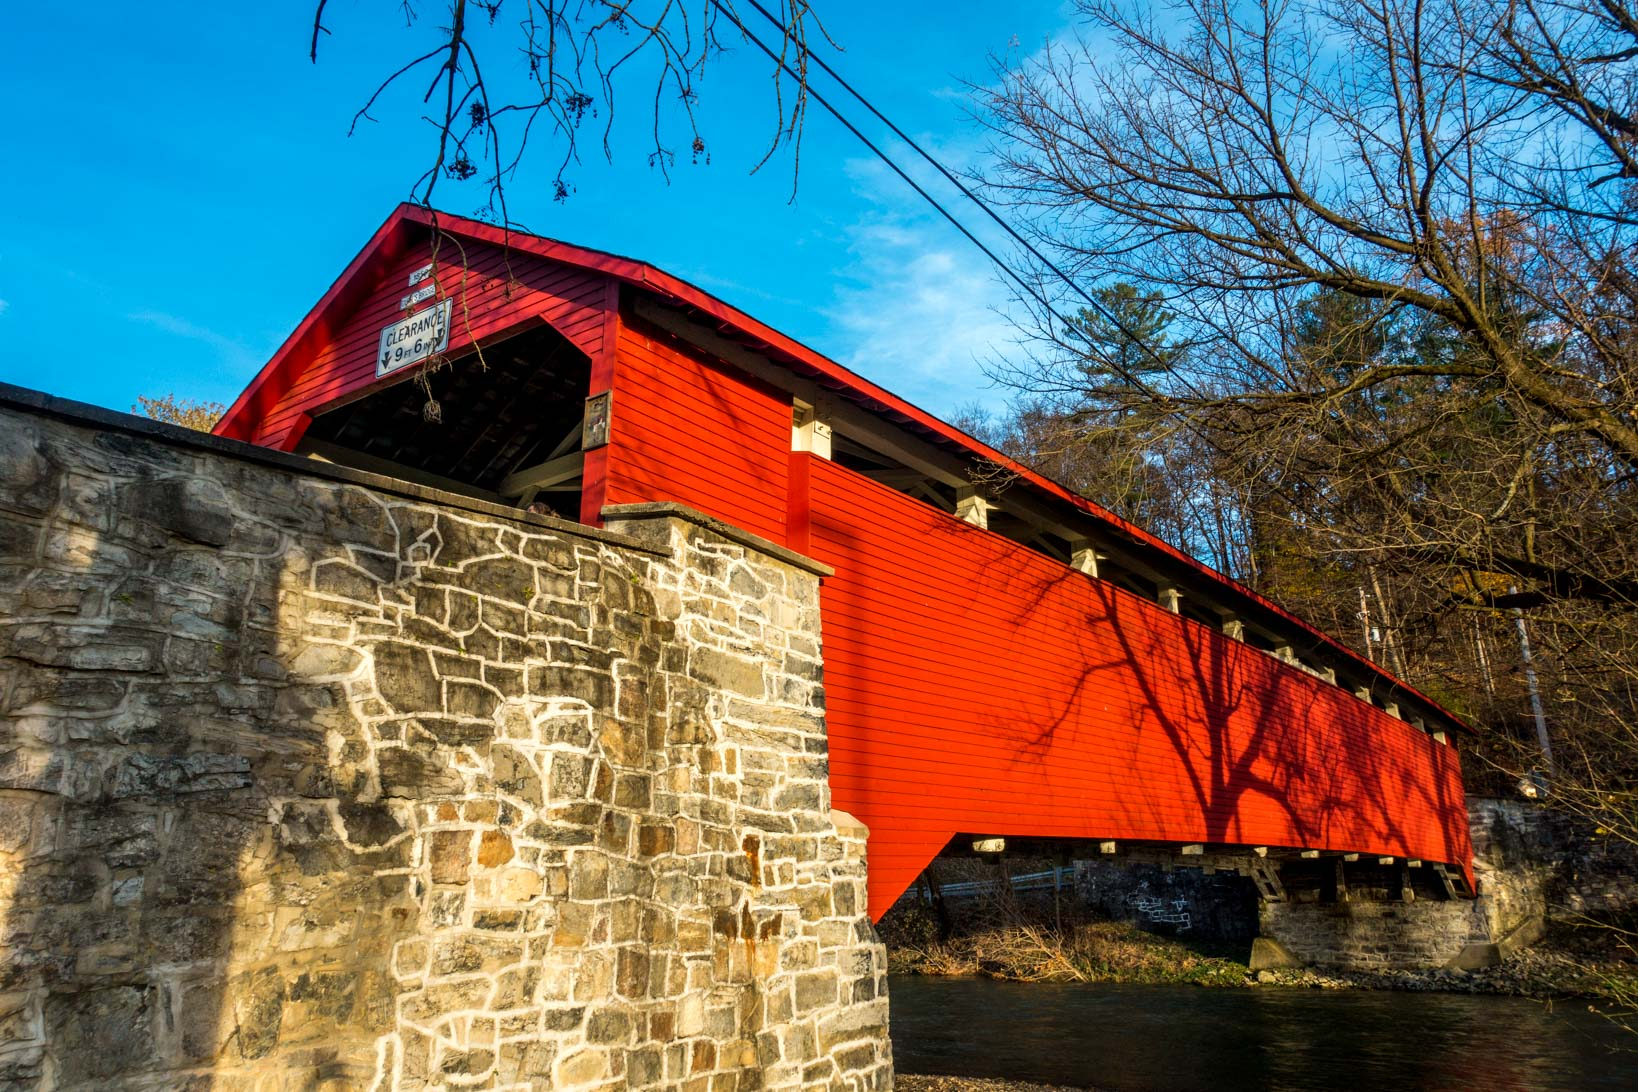 Exploring a red covered bridge in Allentown, PA on a covered bridge tour